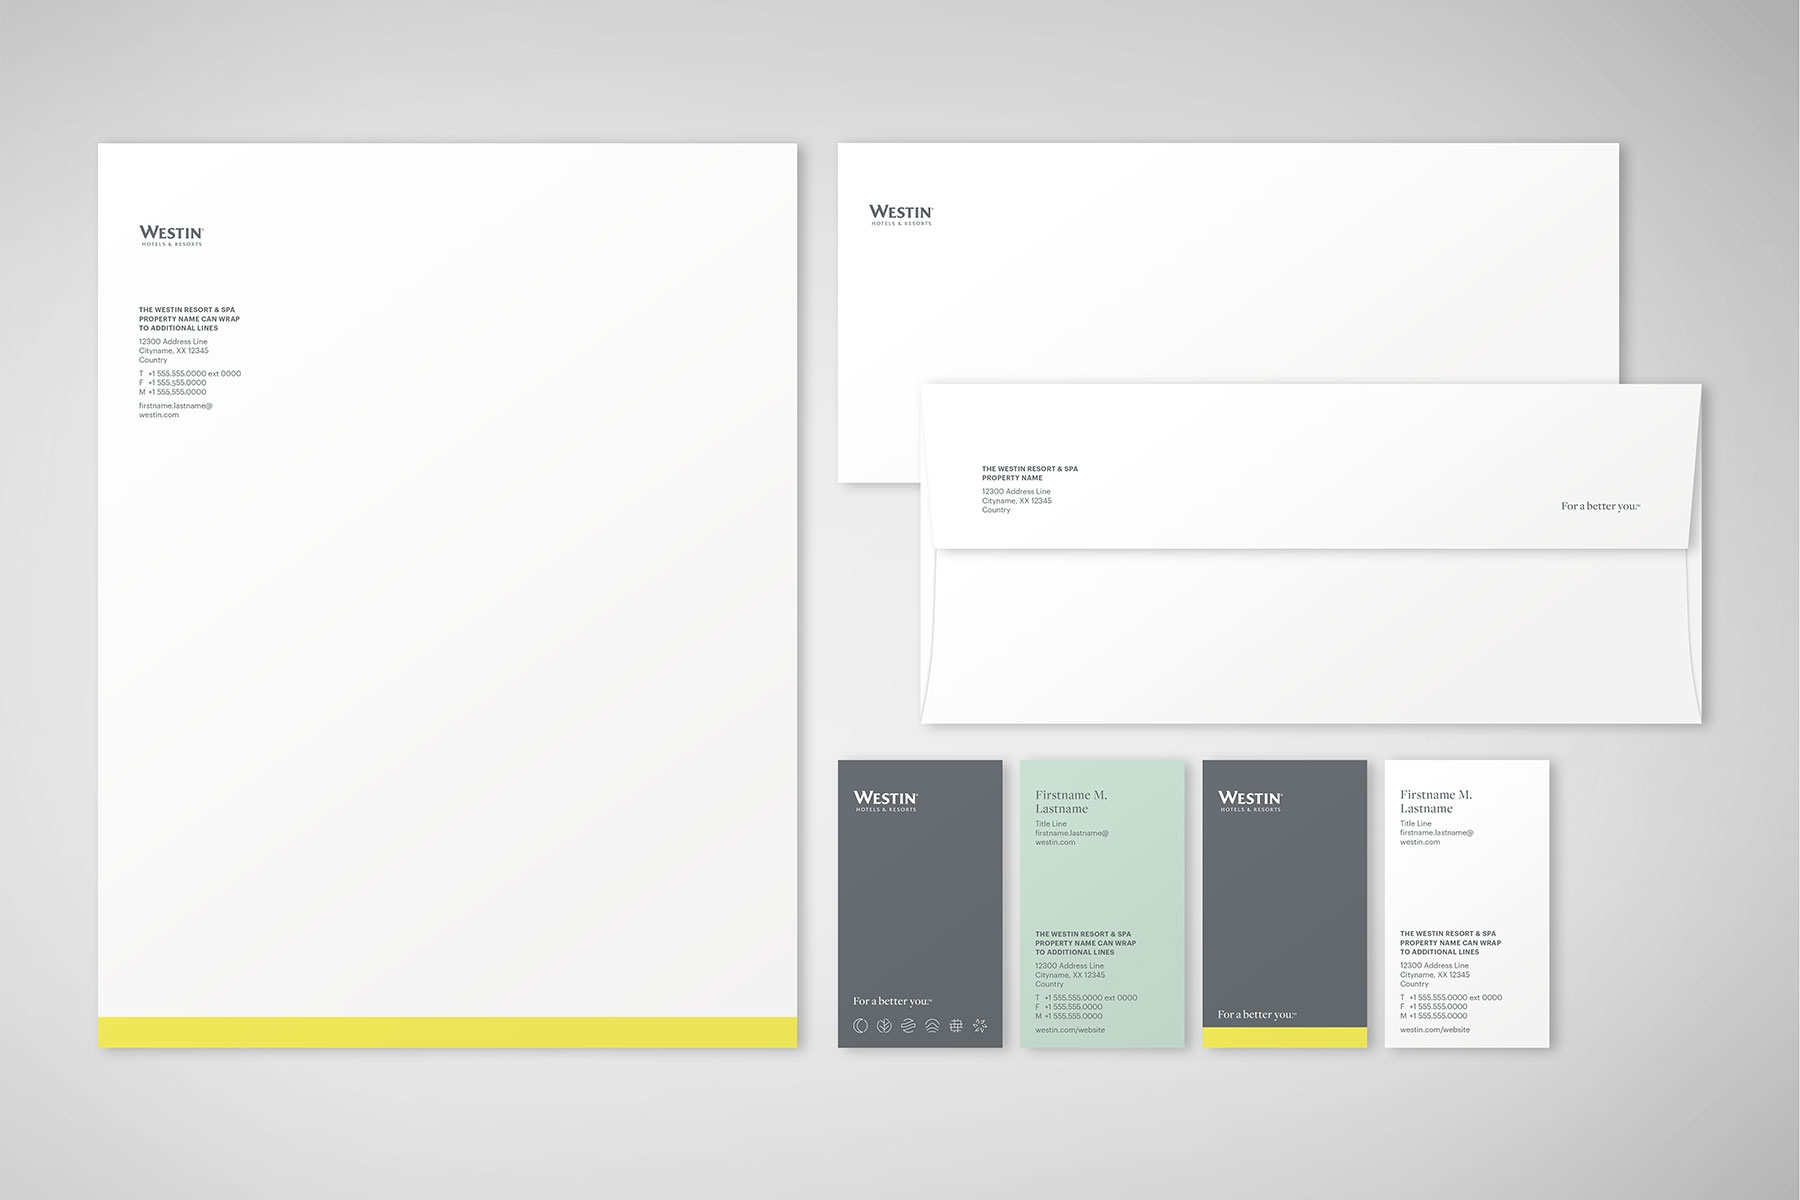 A Print Collateral System That Was Designed For The Westin Hotels Resorts Brand Refresh